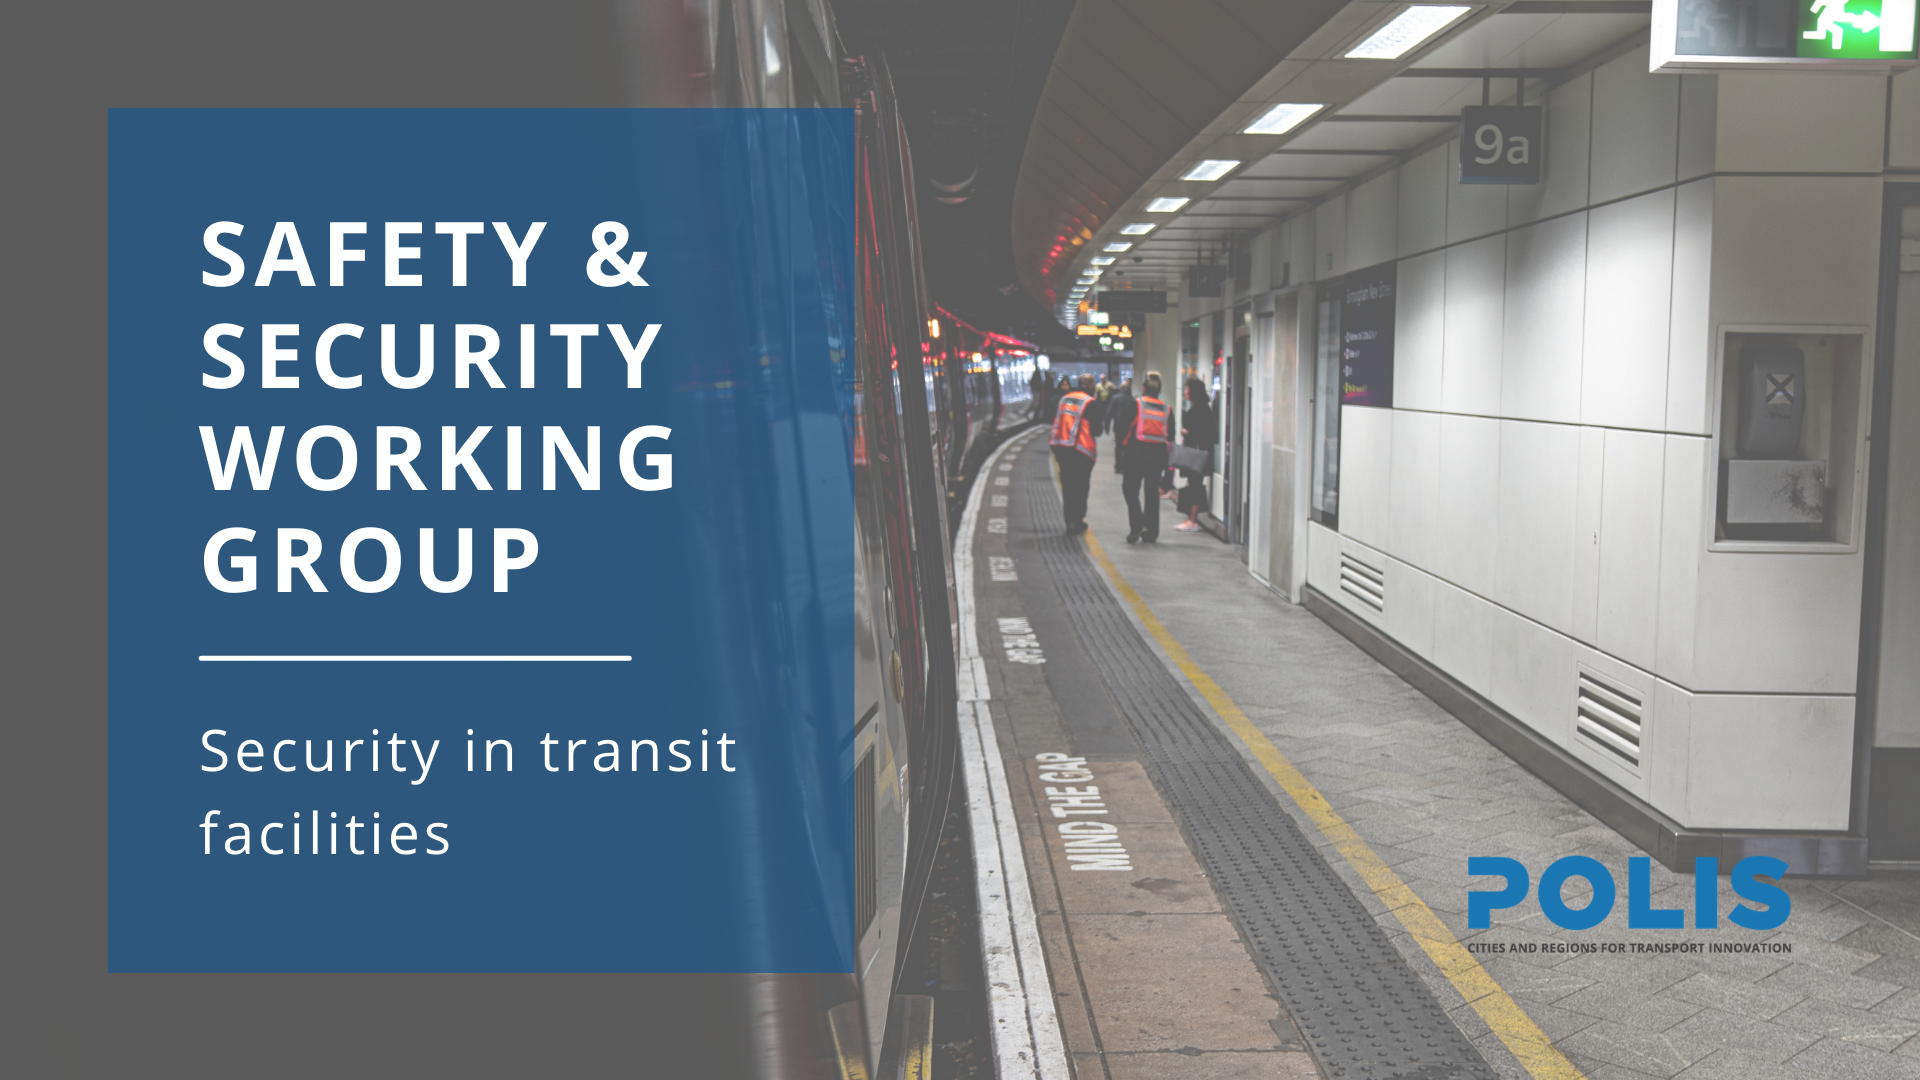 Safety & Security Working Group: Security in Transit Facilities